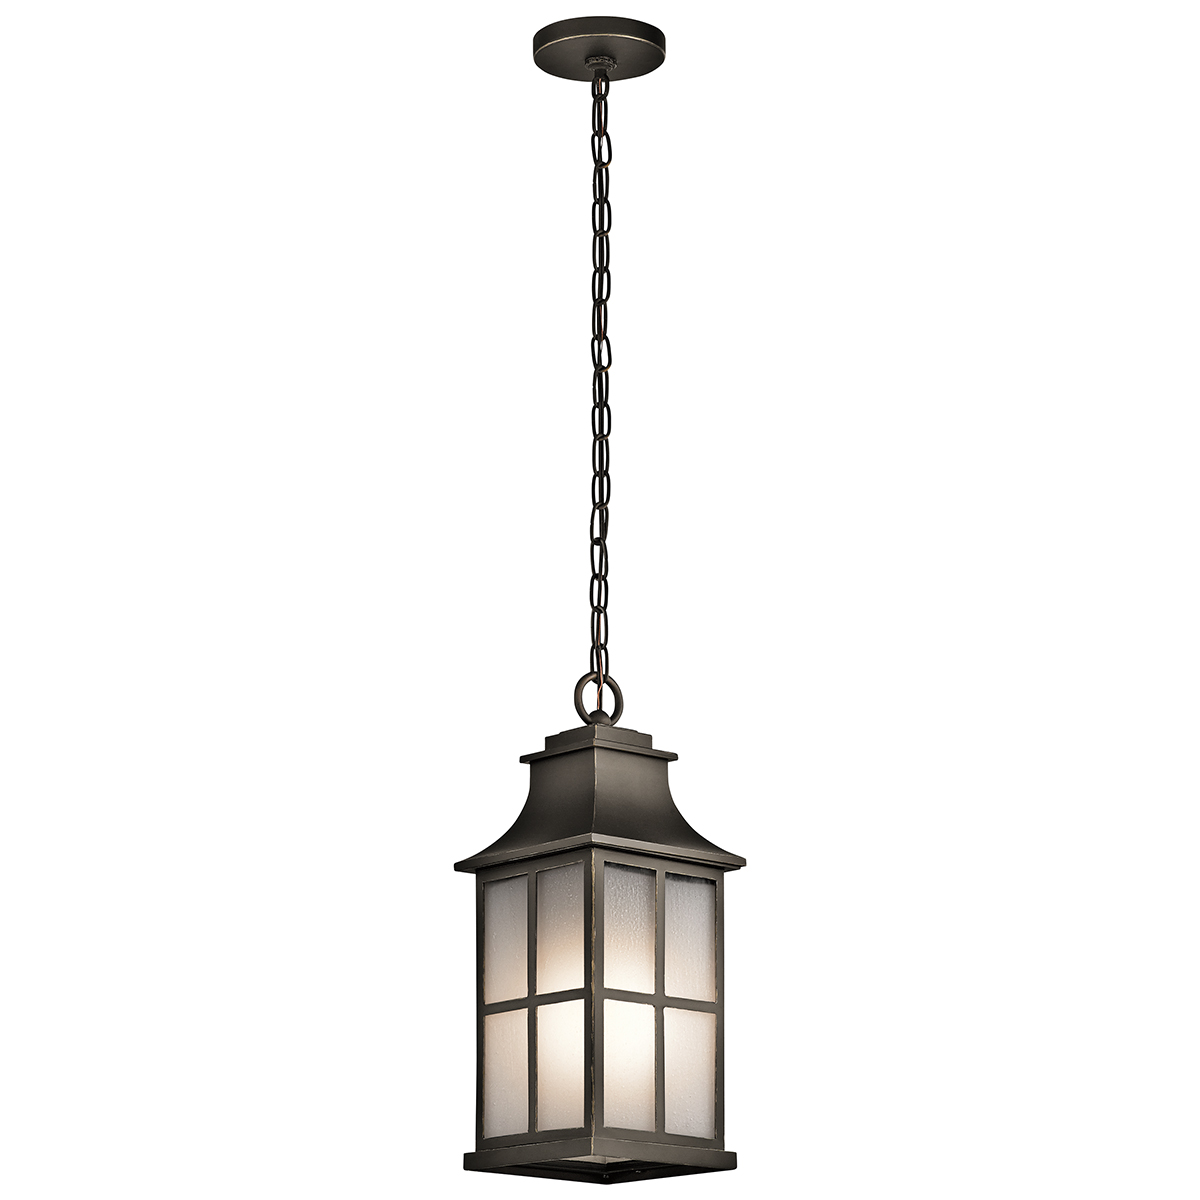 Kichler Lighting 49582OZ Pallerton Way 1 Light Outdoor